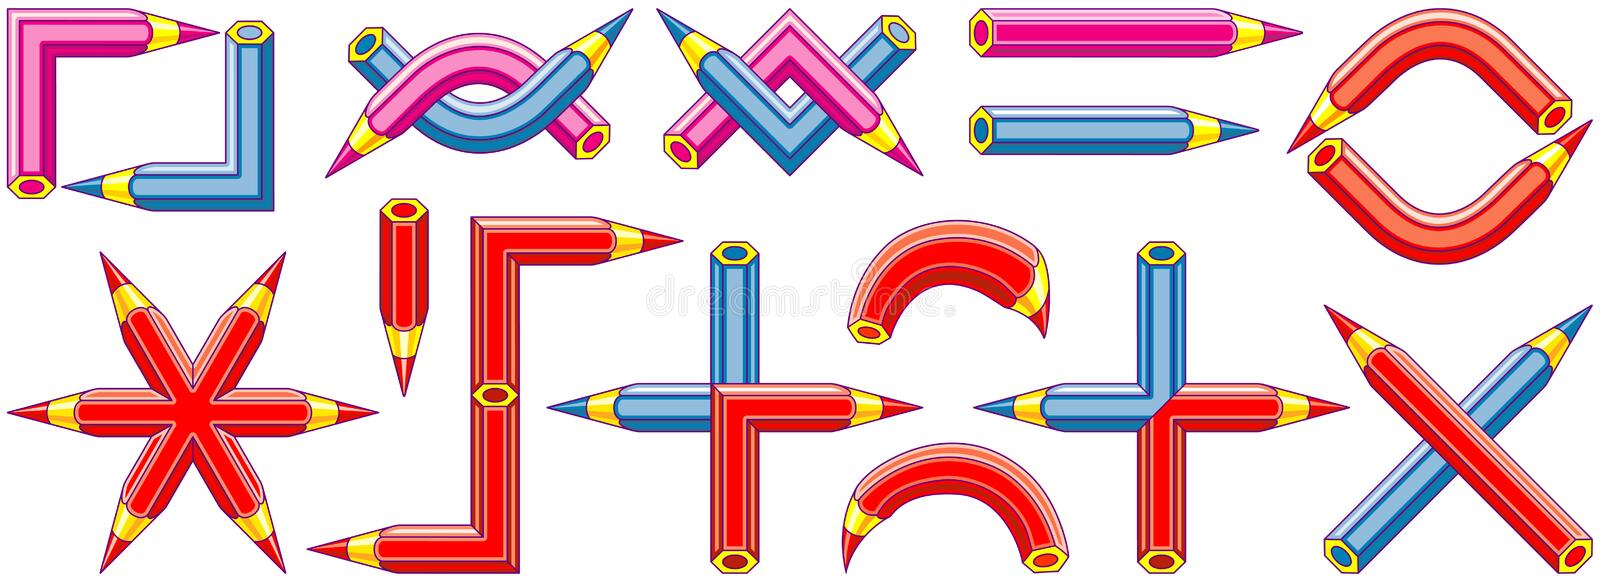 Graphic symbols created from pencils - 2 vector illustration